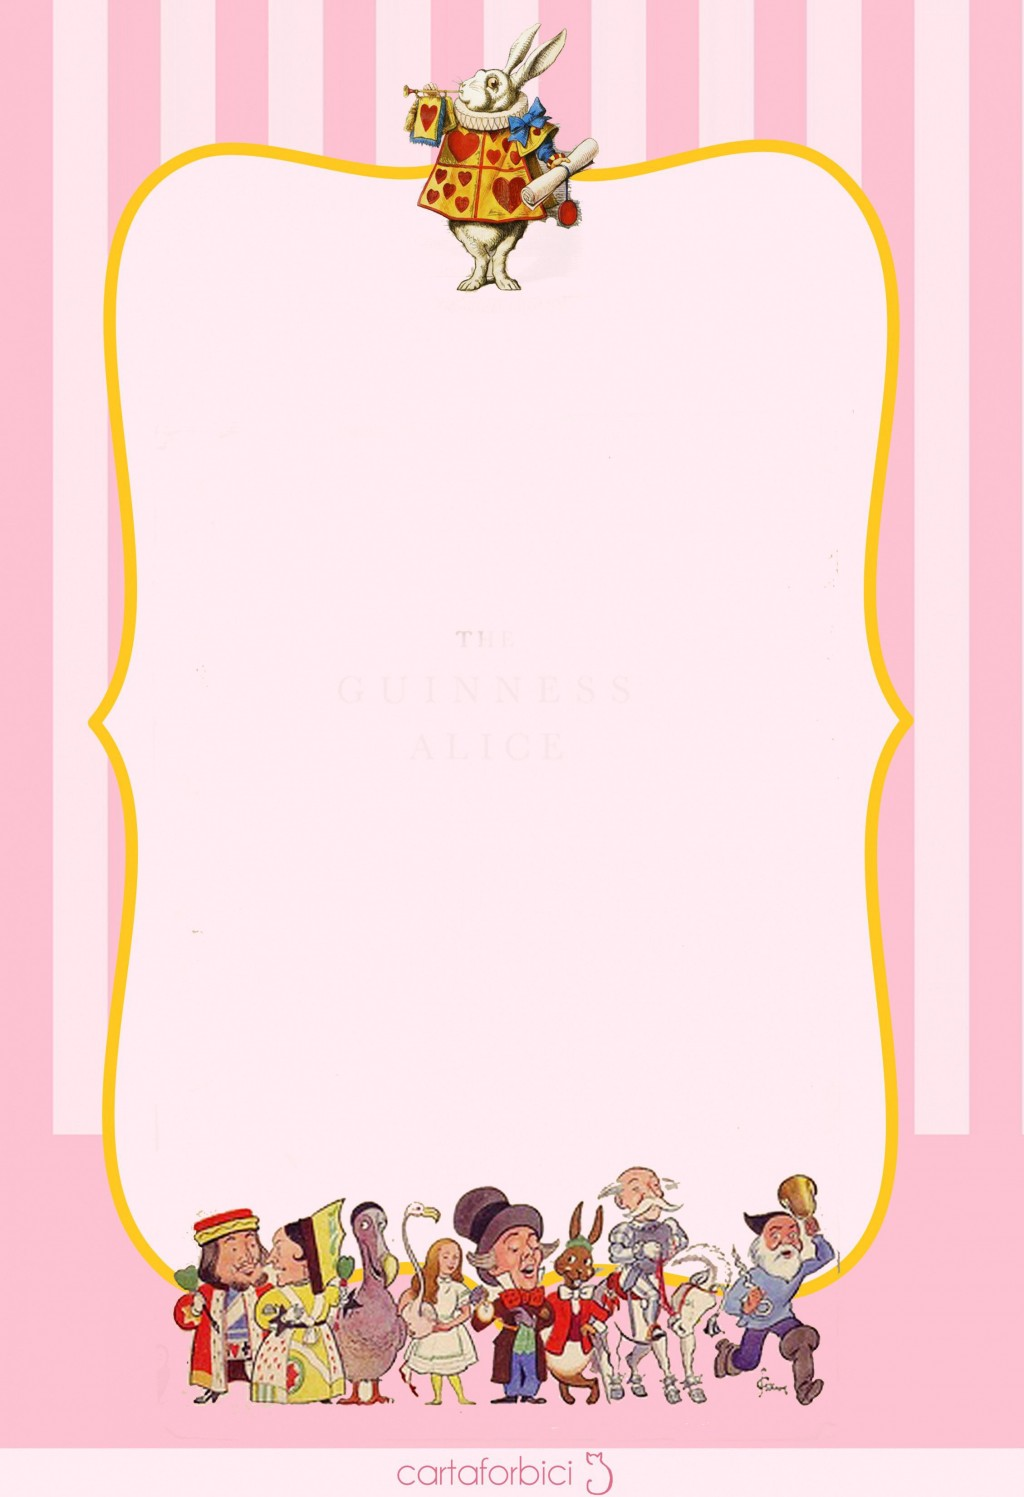 000 Surprising Alice In Wonderland Invite Template High Resolution  Party Invitation FreeLarge